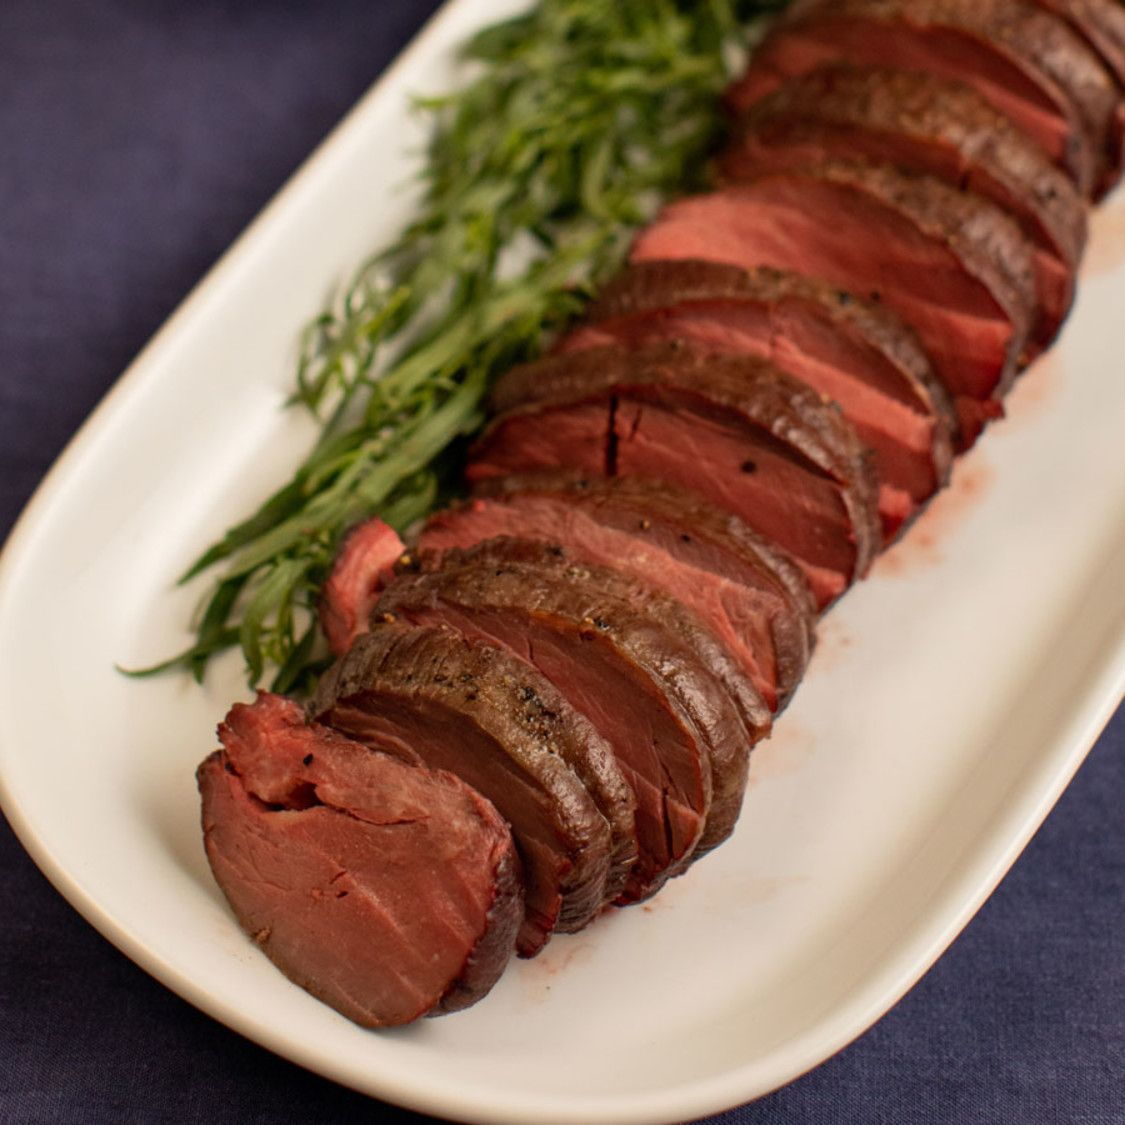 Summer Filet Of Beef With Bearnaise Mayonnaise Recipe Beef Filet Beef Tenderloin Recipes Food Network Recipes